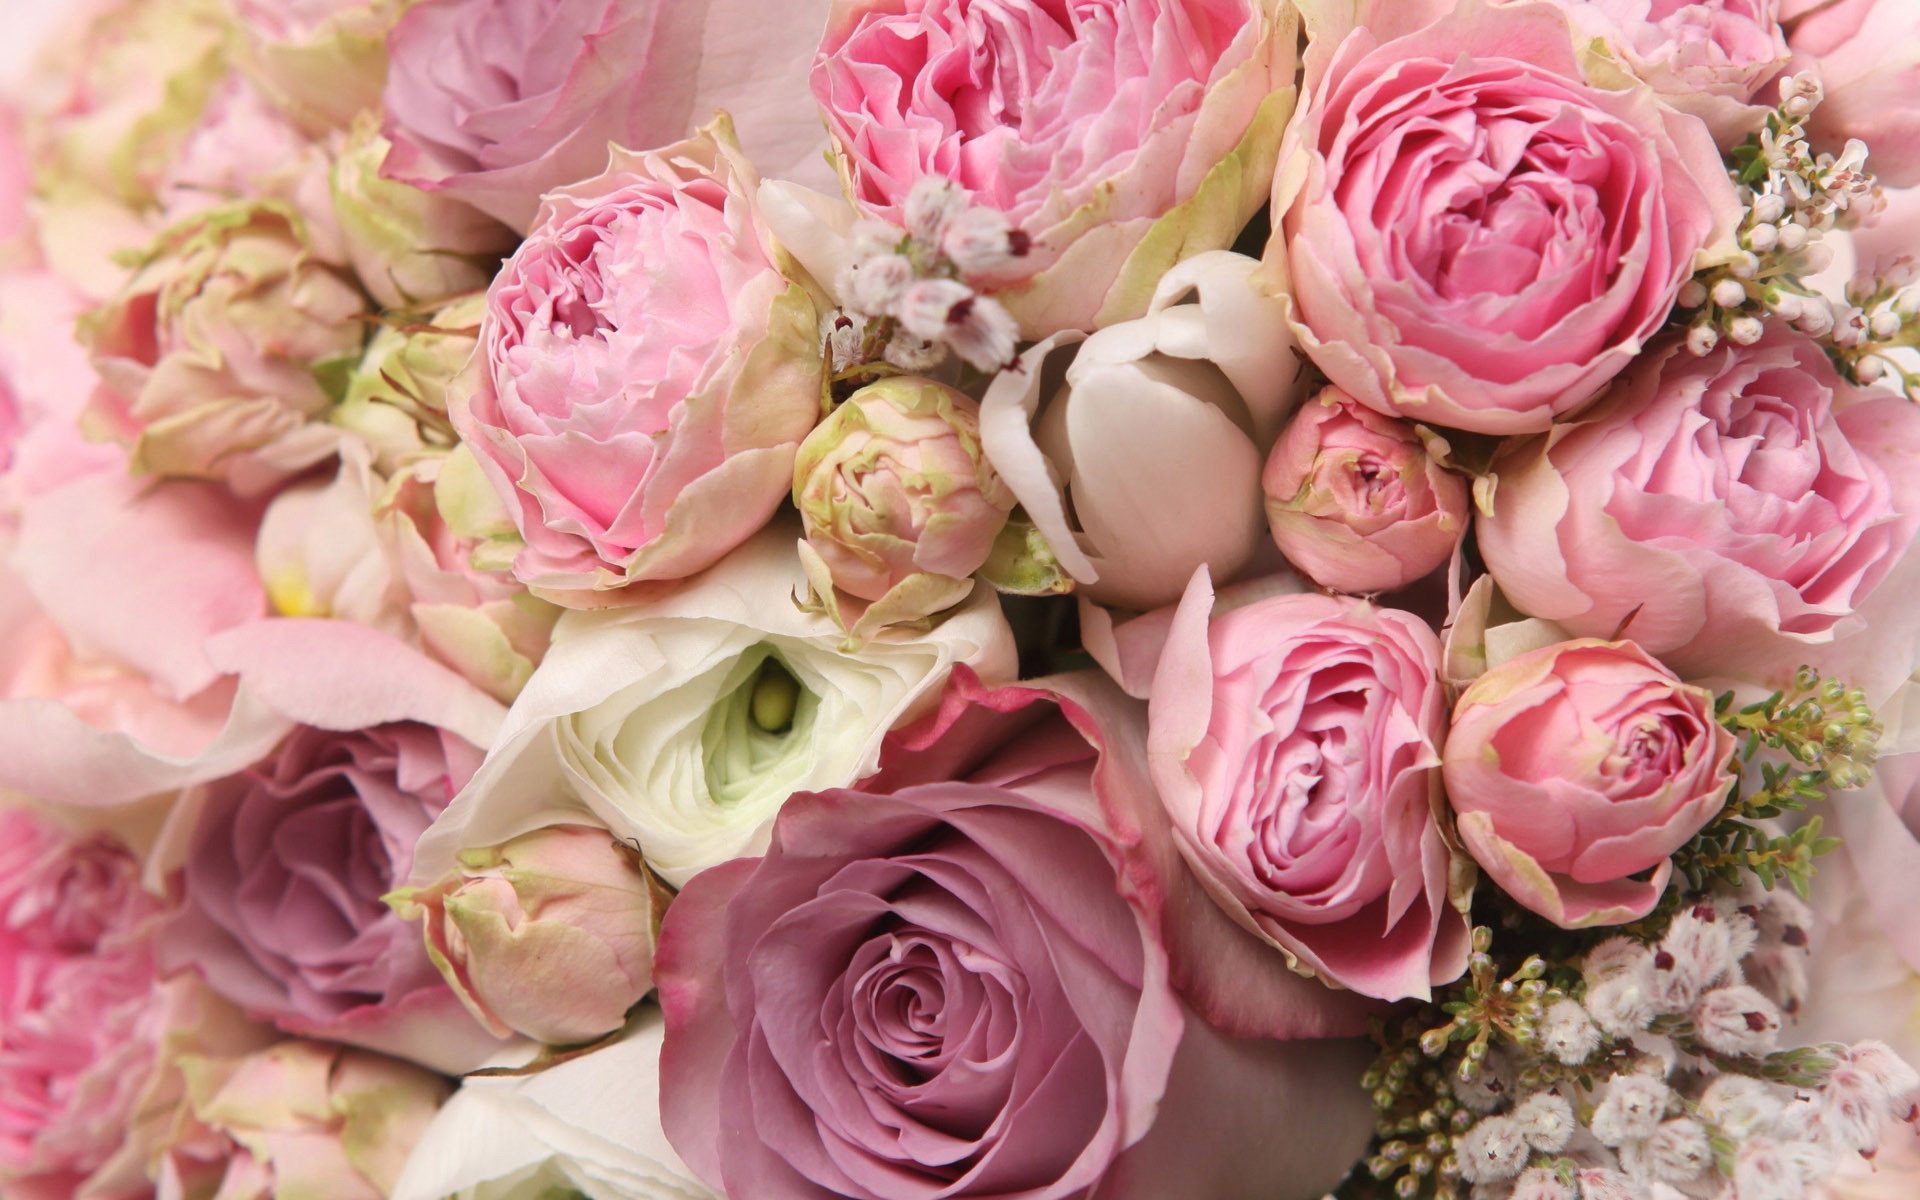 1920x1200 Roses and peonies bouquet wallpaper - 1206743